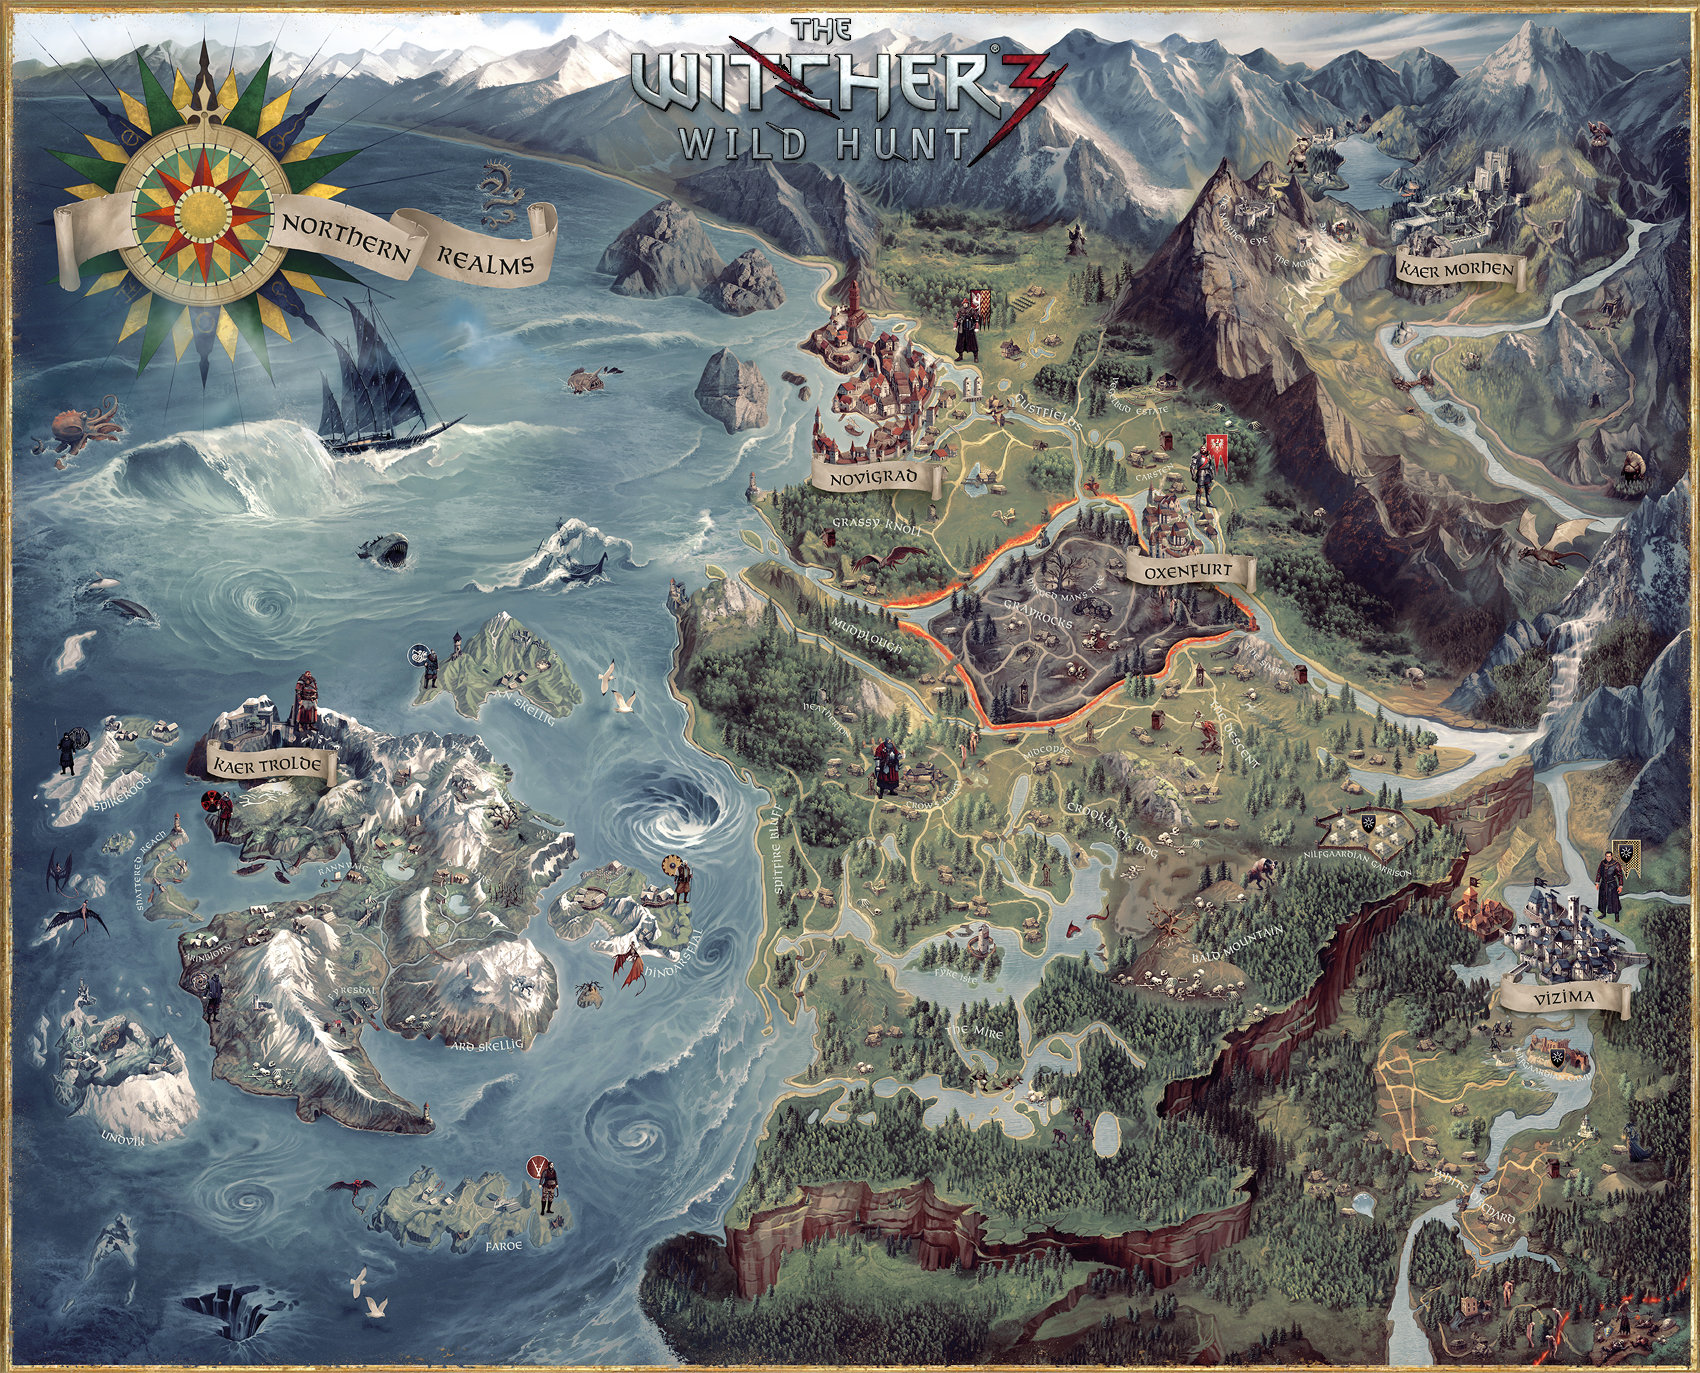 ArtStation - Witcher 3 CE Map, Damien Mammoliti on map china, map graphics, map drawings, map history, map clothing, map curtains, map food, map fabric, map cartoons, map books, map projects, map puzzle, map wallpaper, map postcards, map dishes, map services, map accessories, map design, map home decor, map social work,